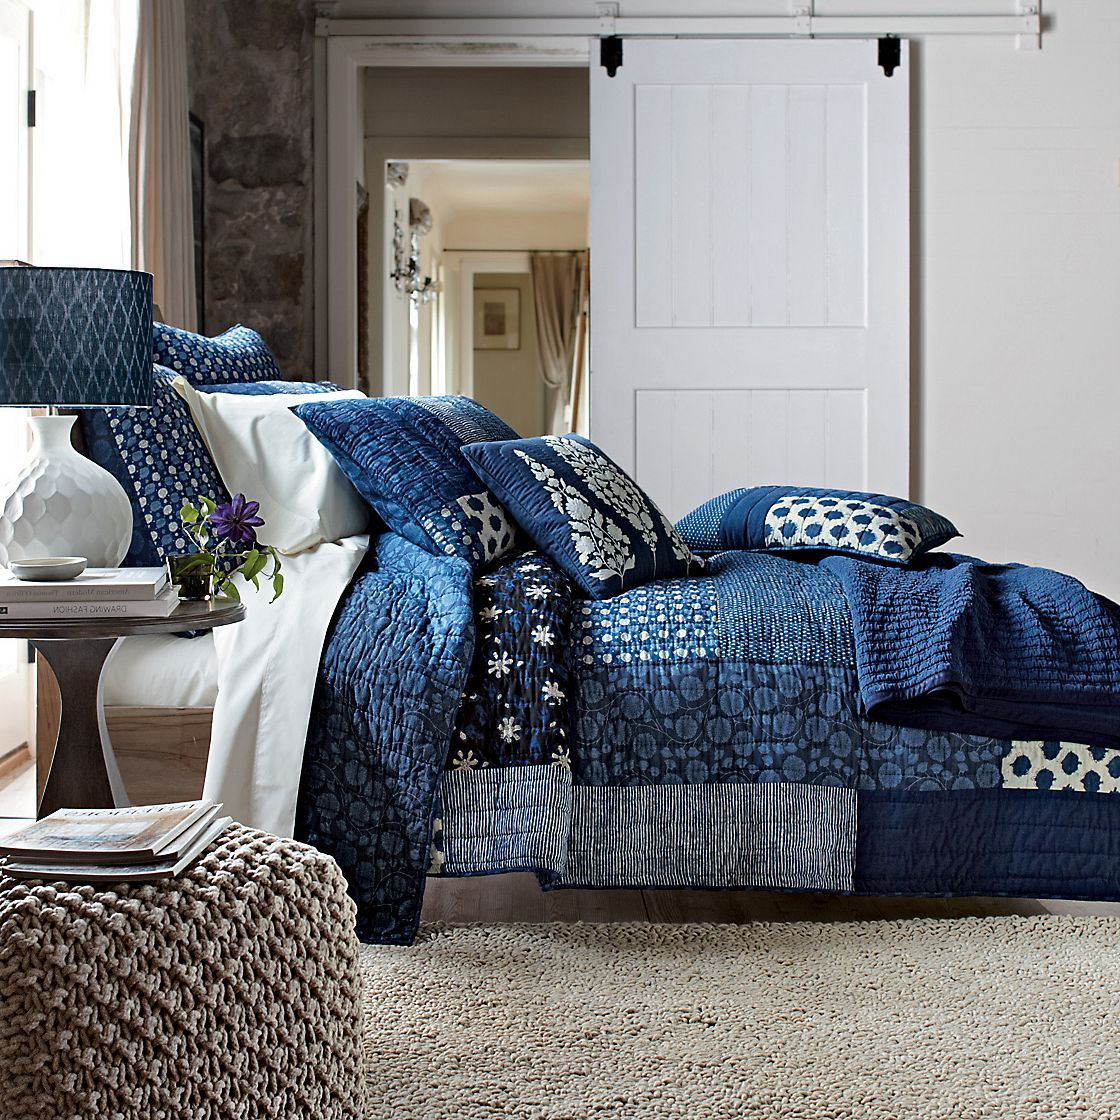 Blue And White Quilt From Company StoreI Like The Indigo